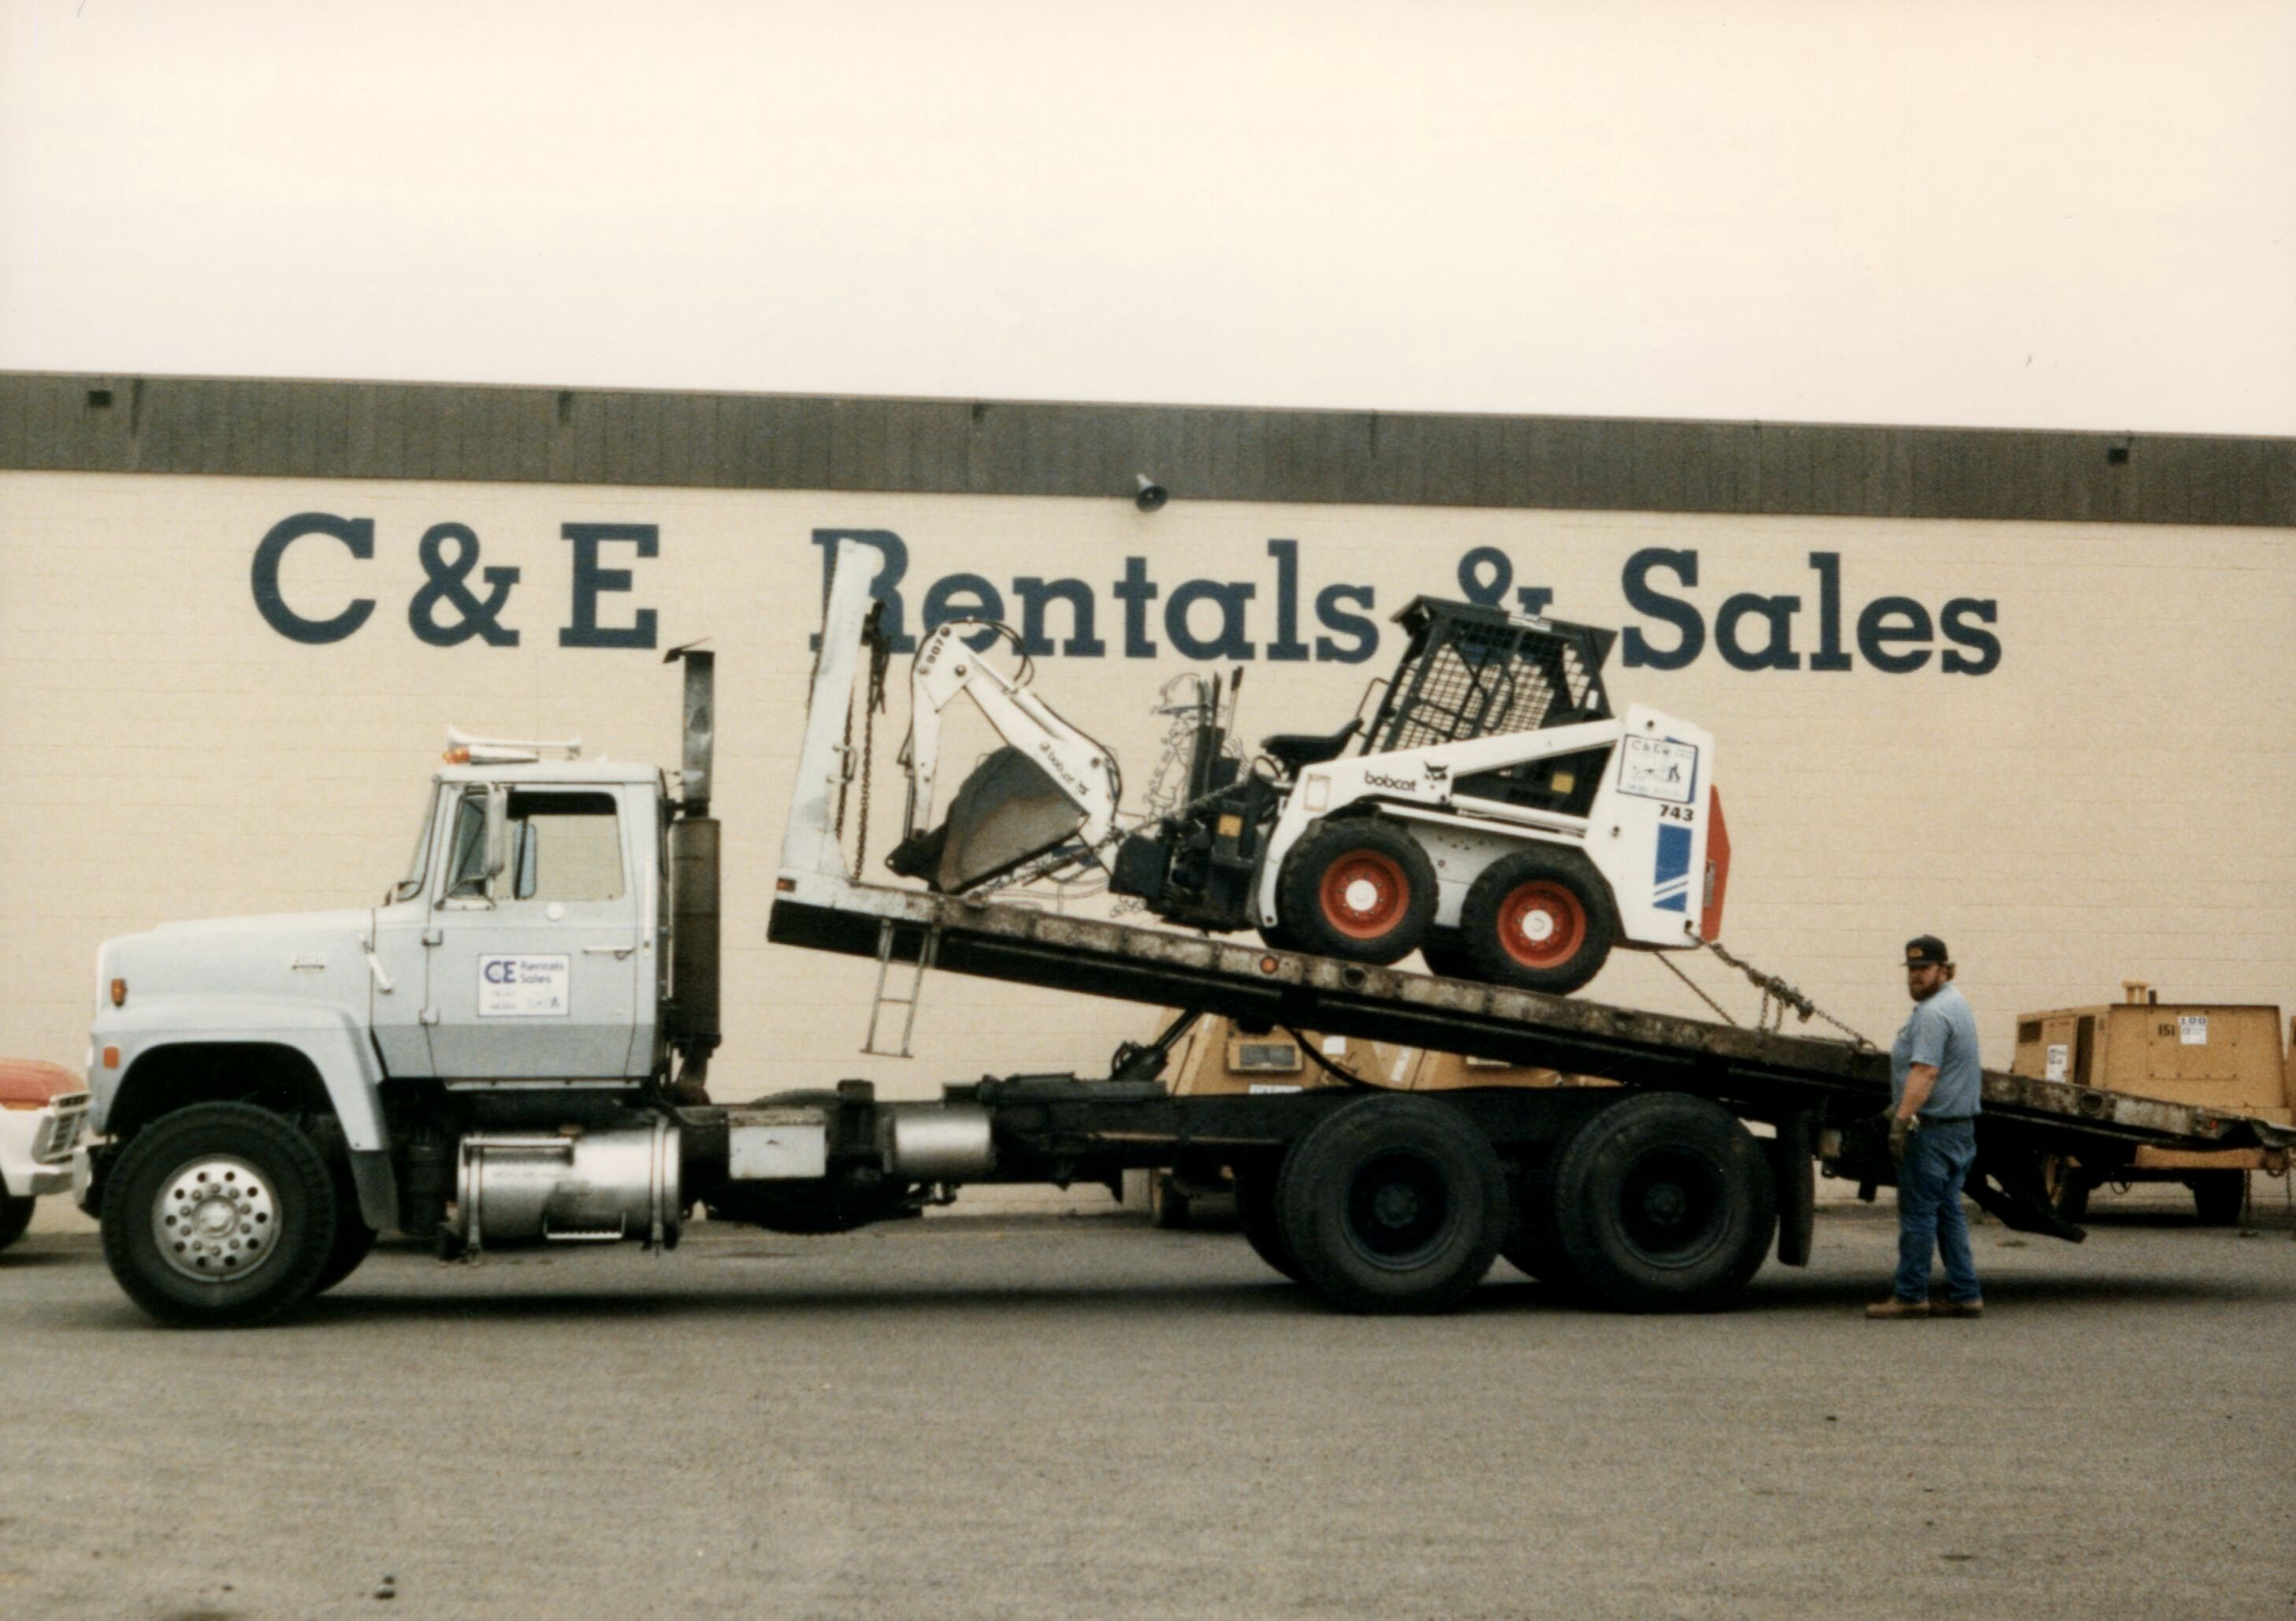 Learn more about C & E Rentals